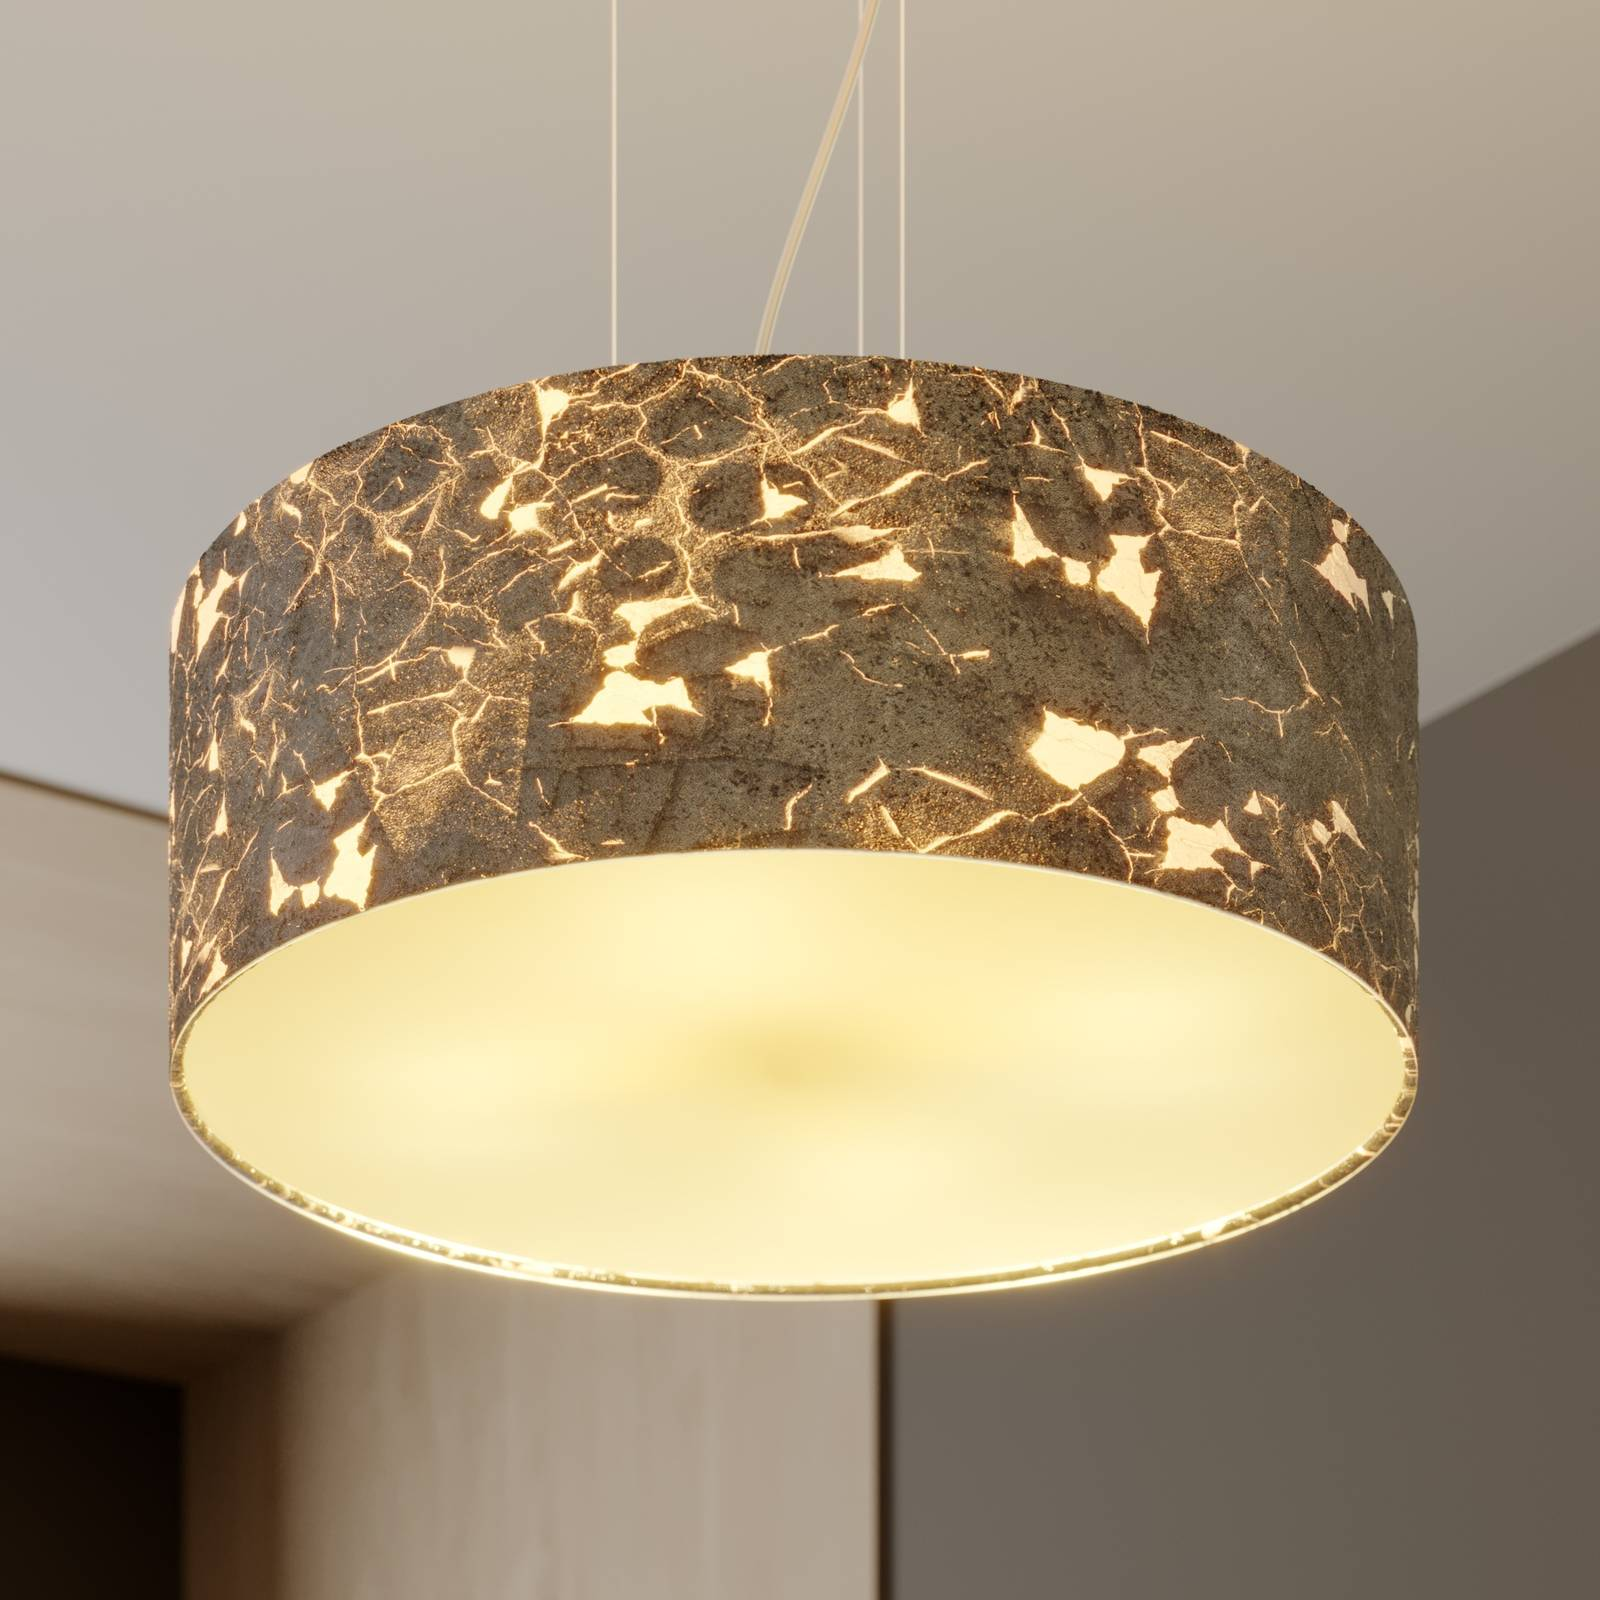 Hanging lamp Aura, silver-coloured lampshade from Lucande